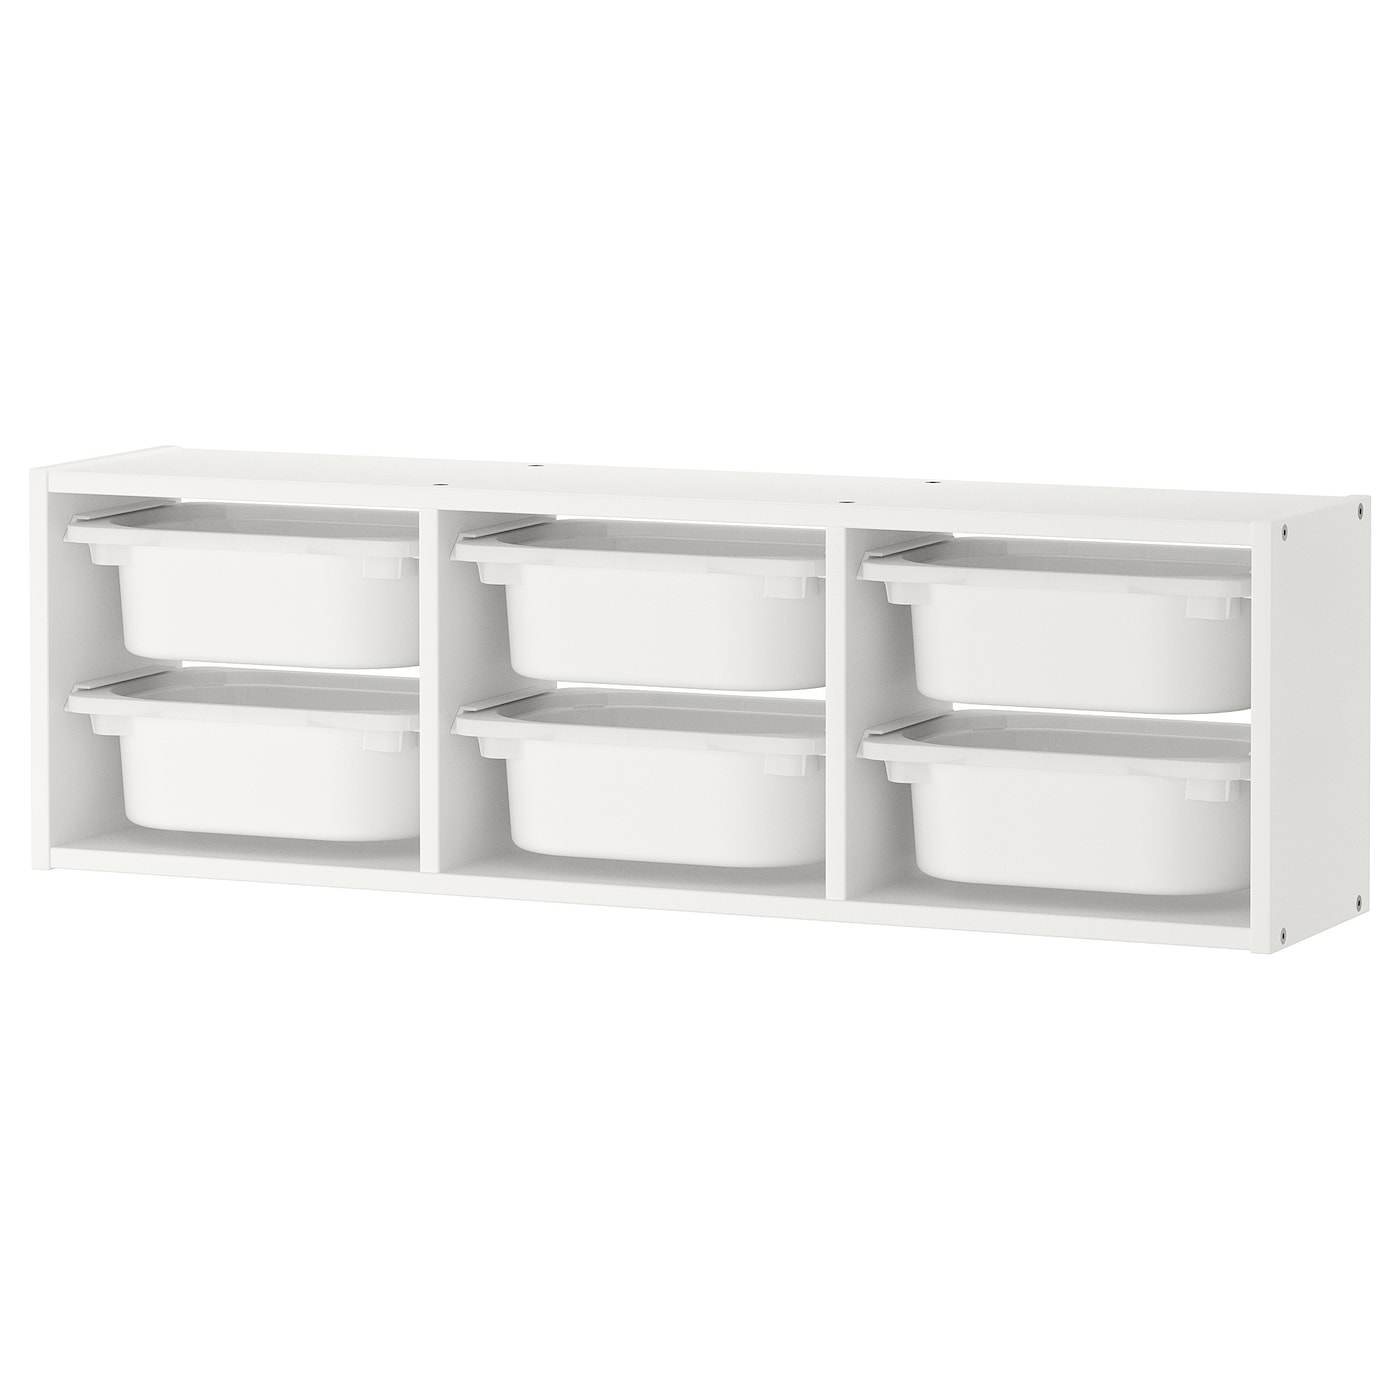 trofast rangement mural blanc blanc 99 x 21 x 30 cm ikea. Black Bedroom Furniture Sets. Home Design Ideas